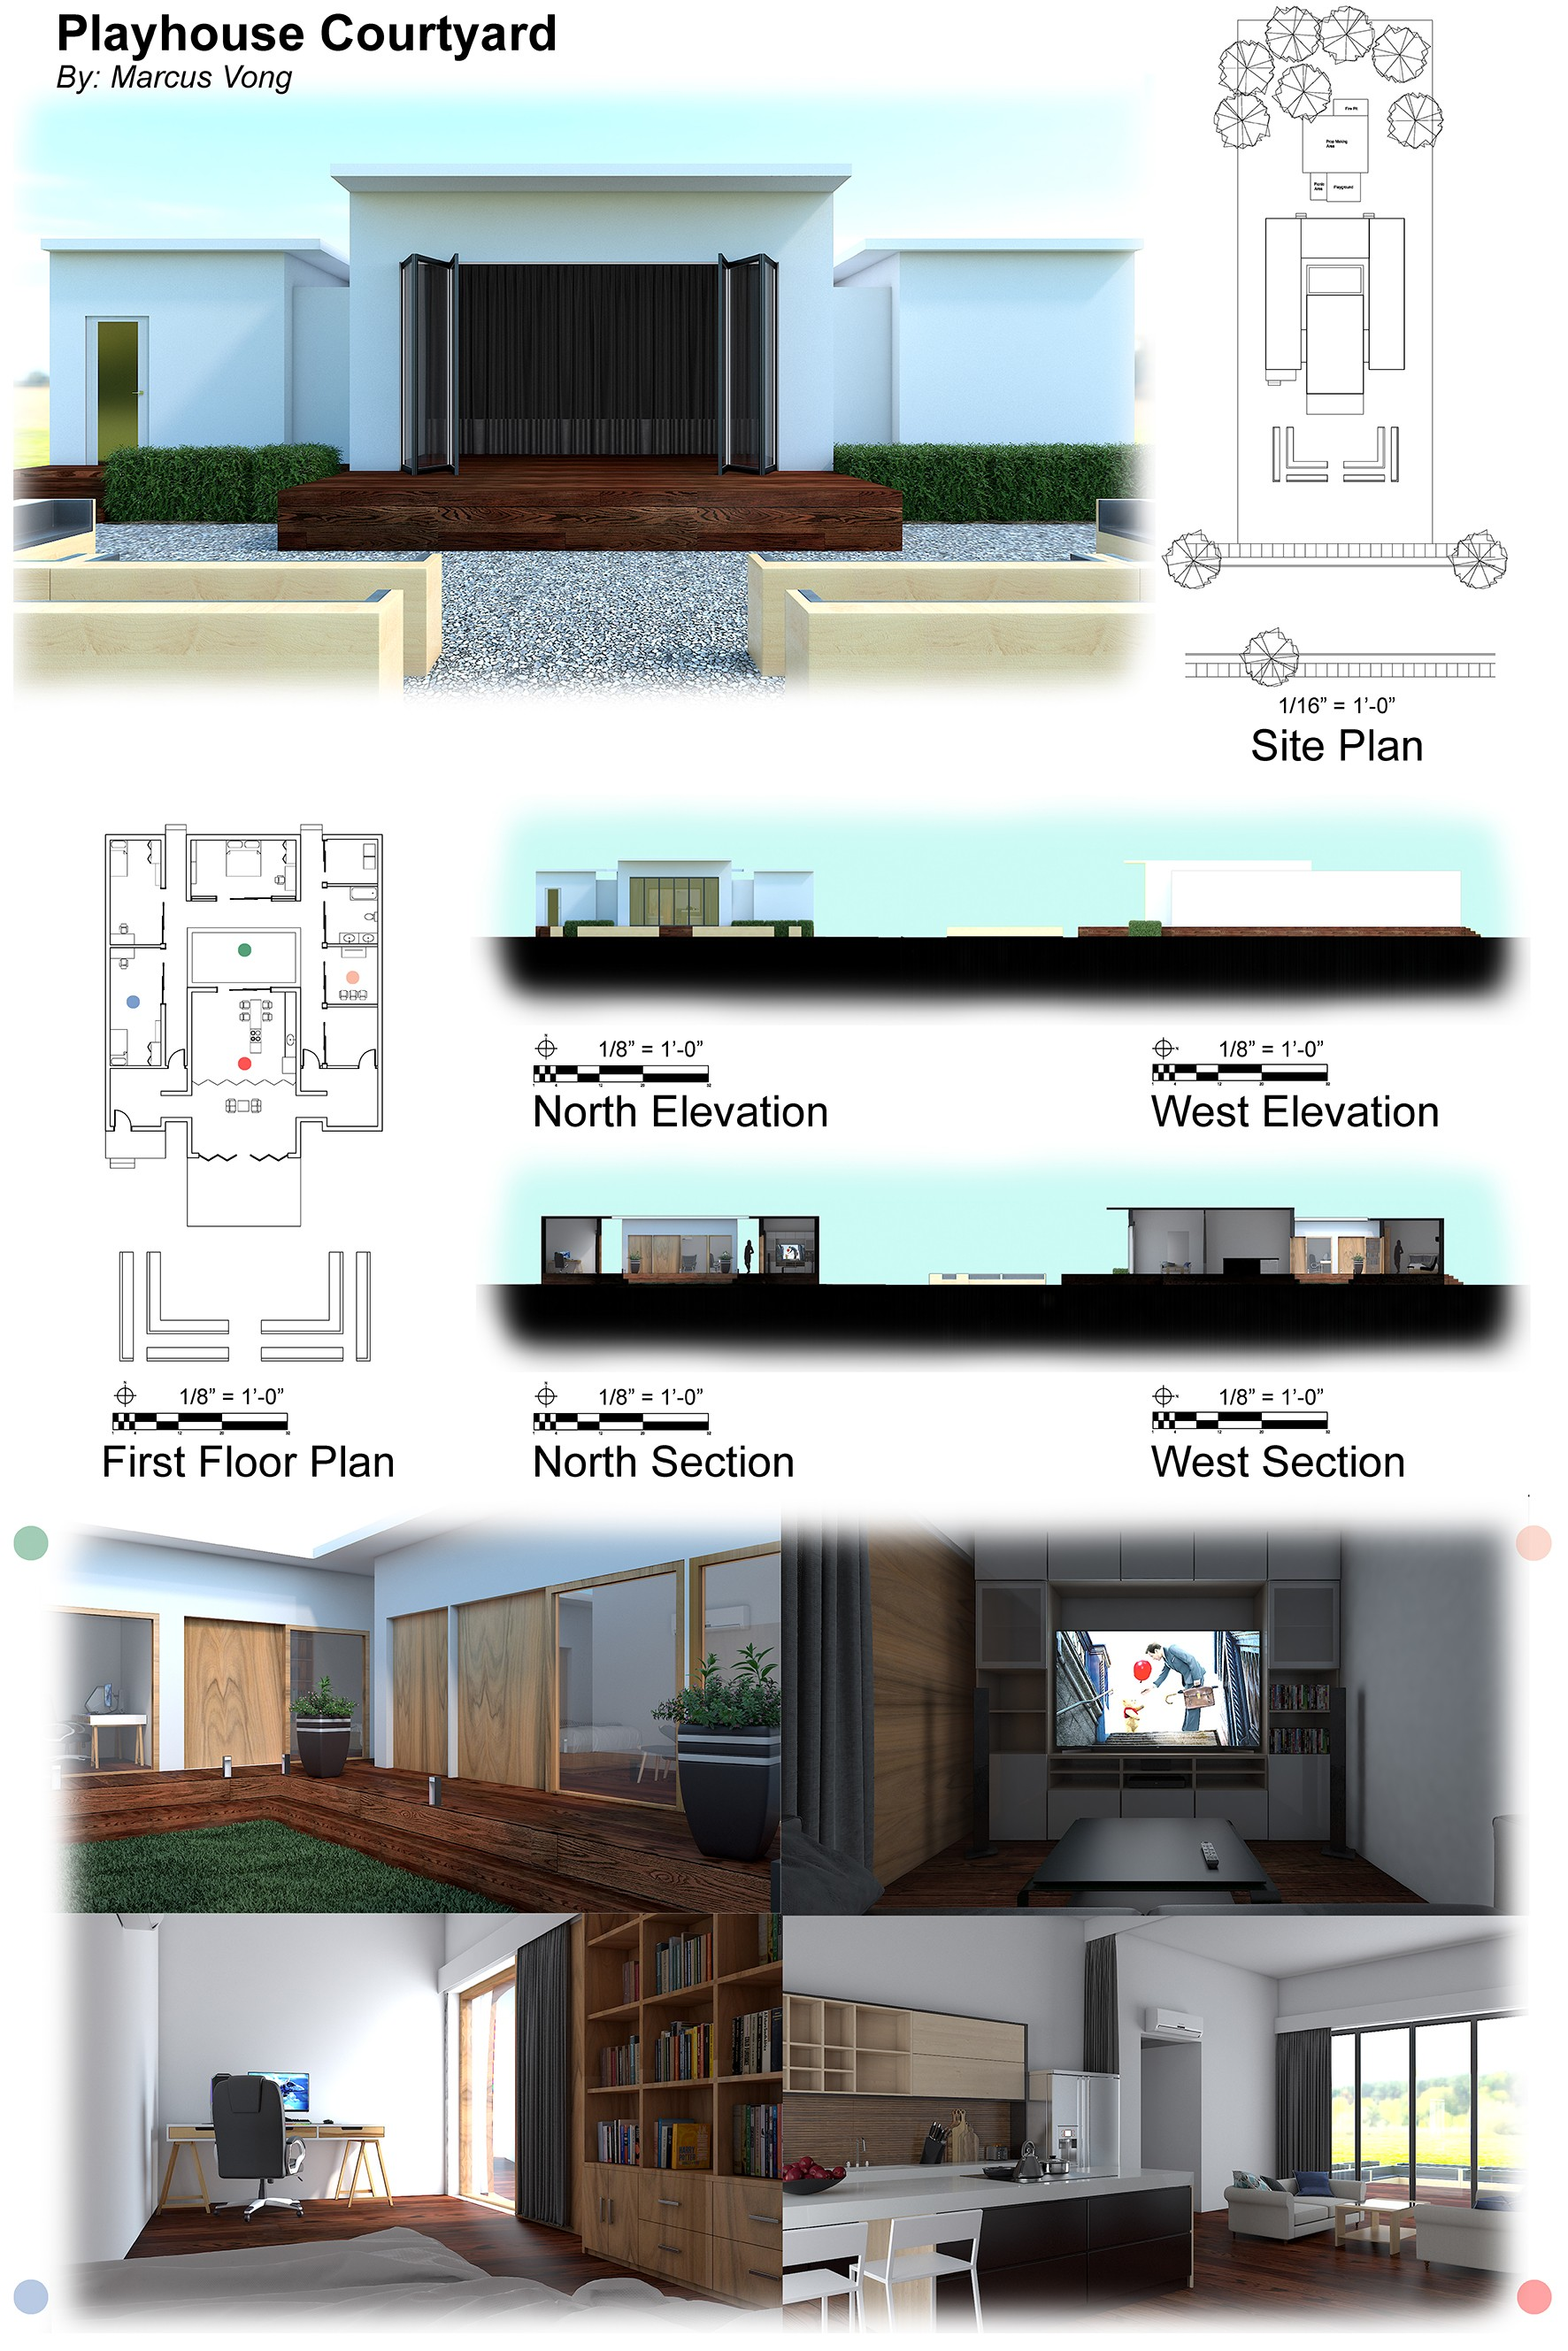 Design Board for Playhouse Courtyard